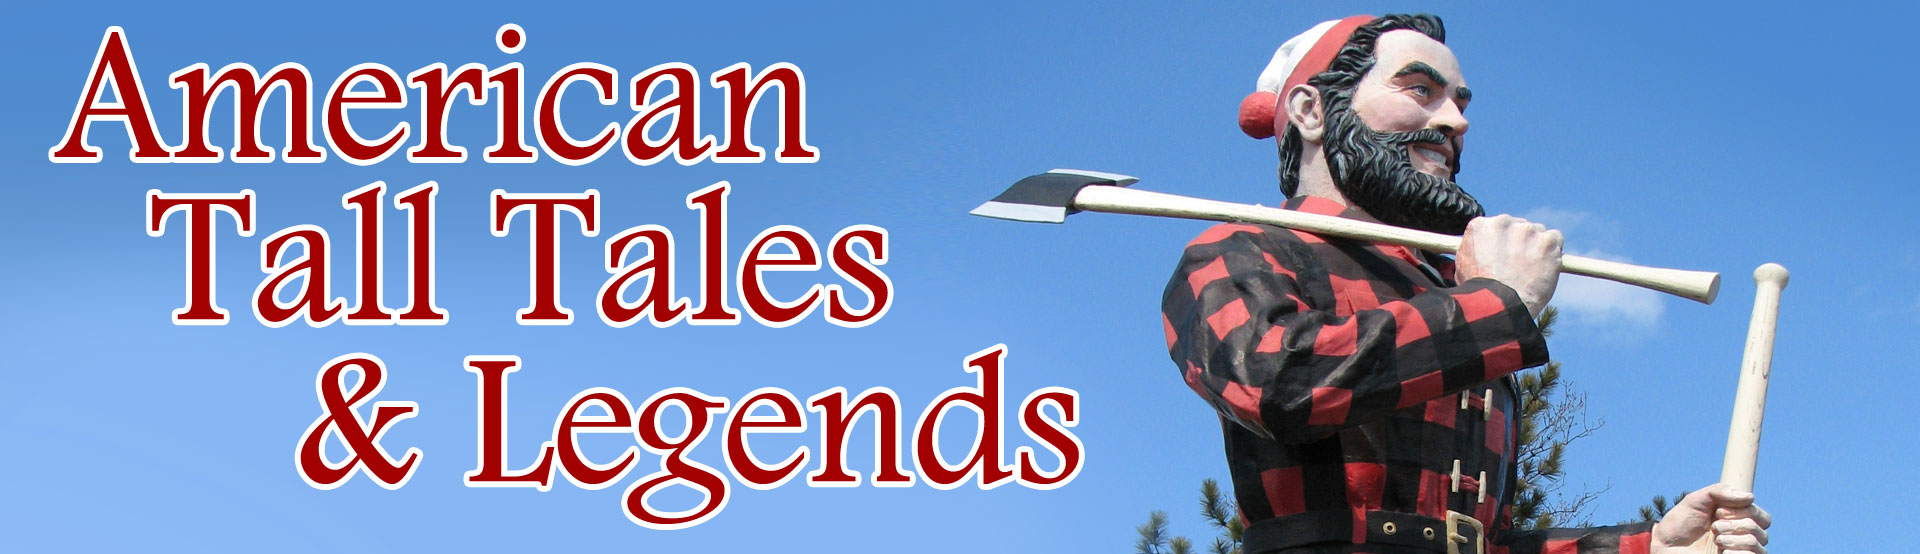 American Tall Tales & Legends